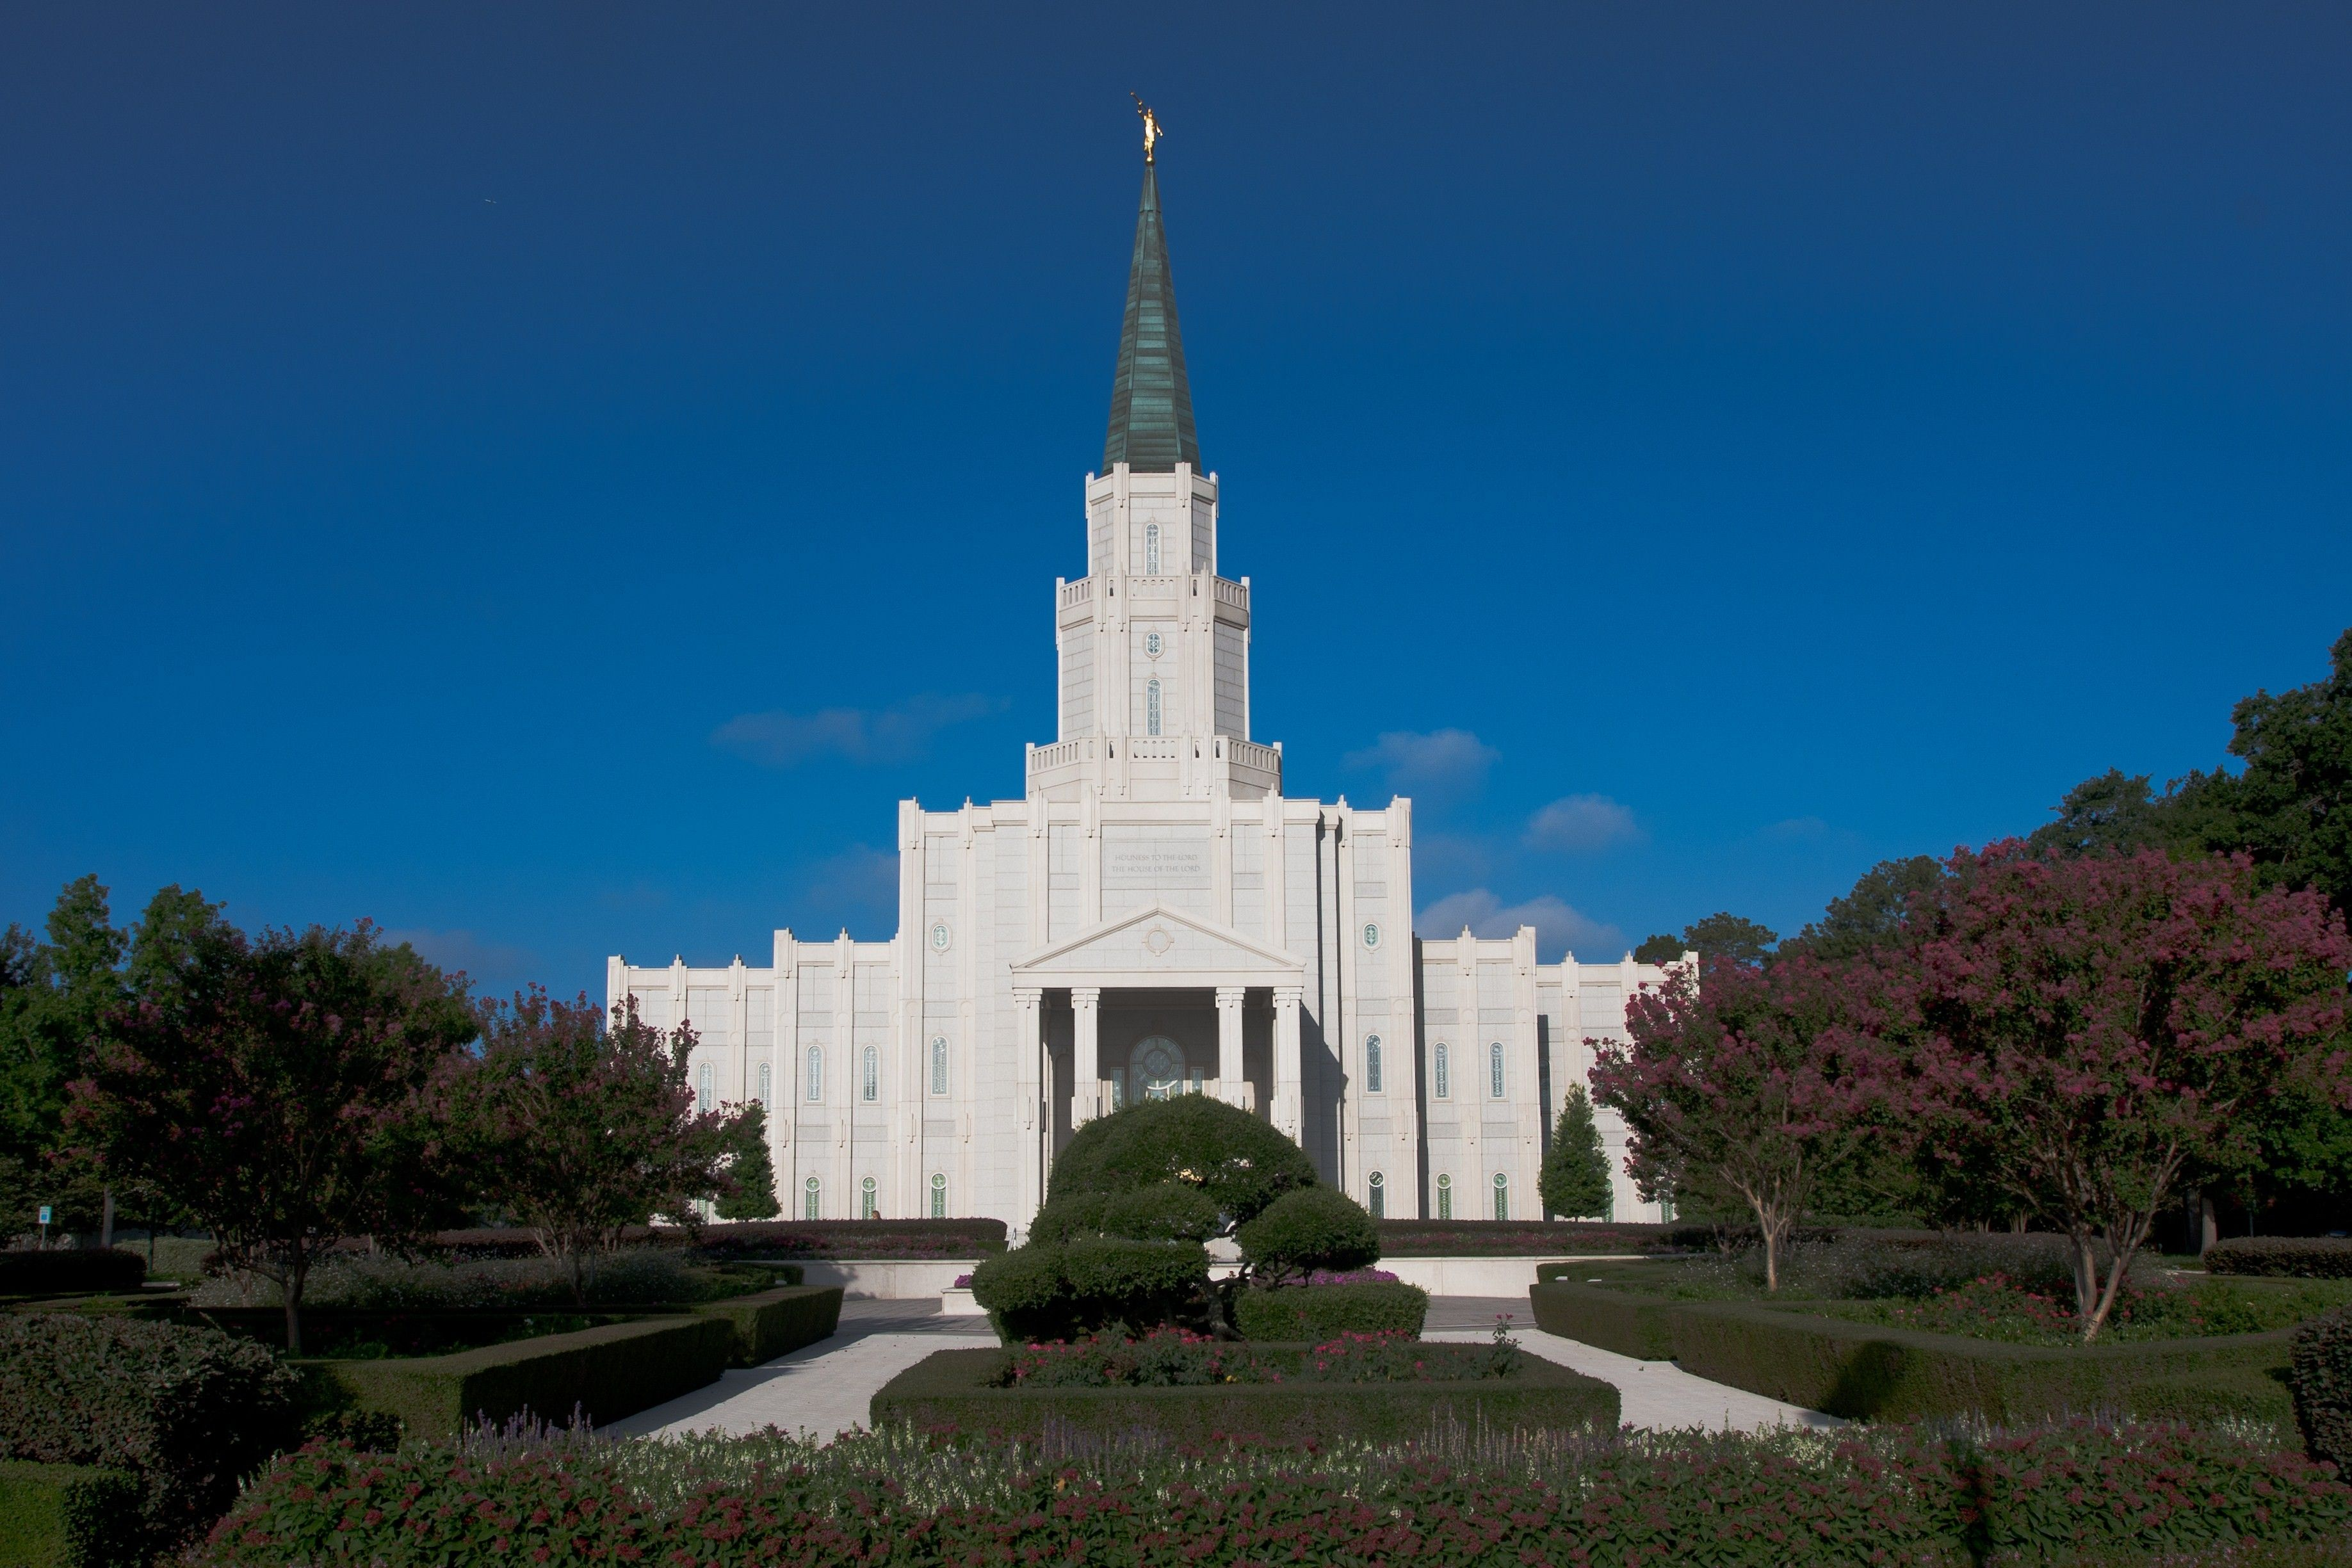 The Houston Texas Temple and grounds in the daytime.